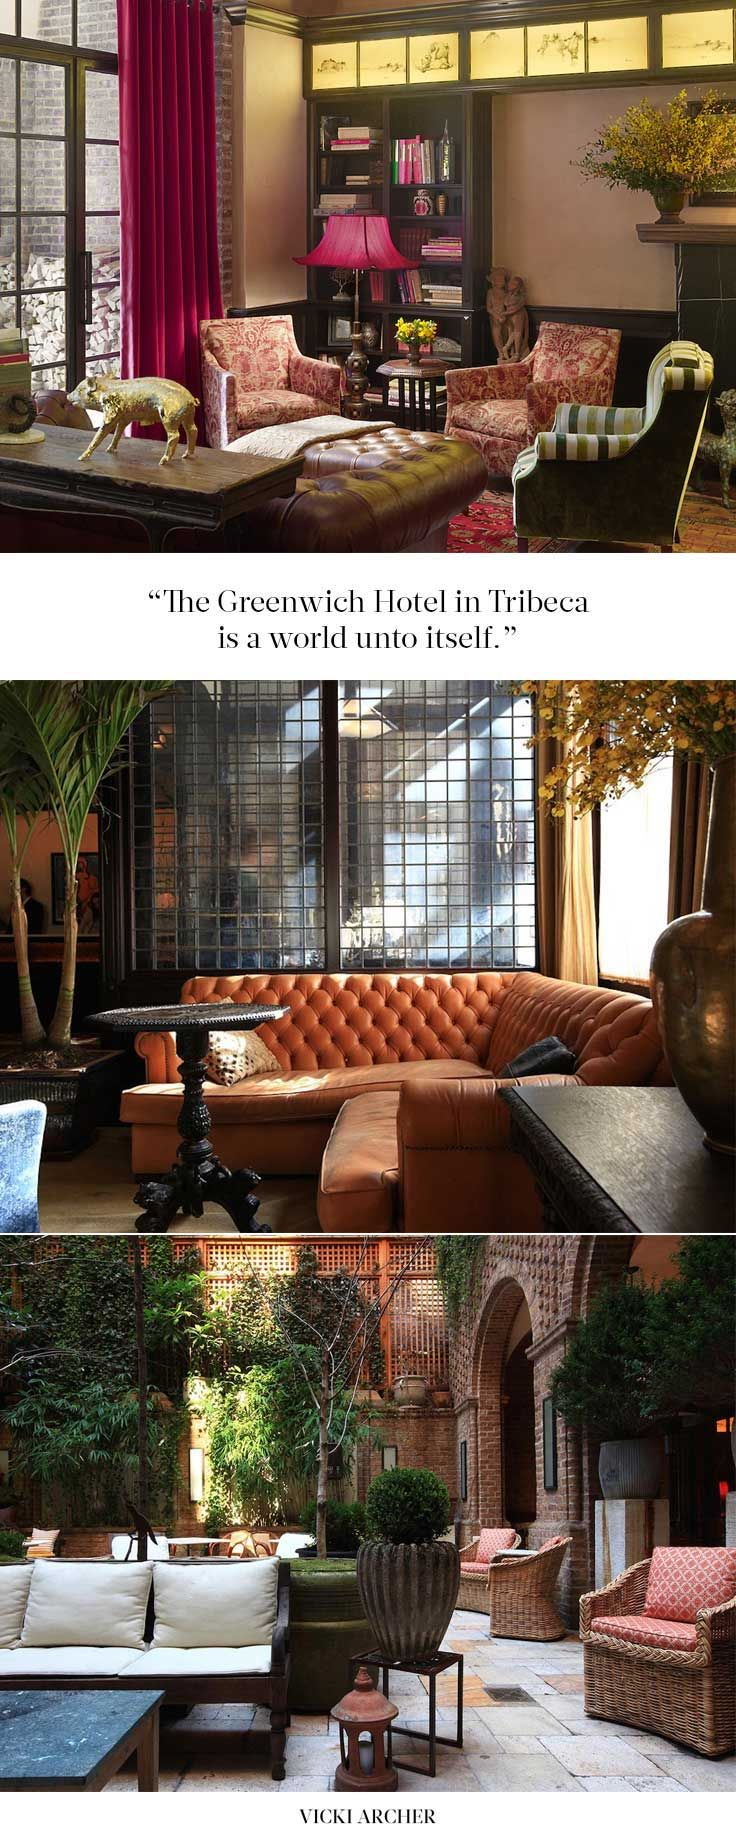 The Greenwich Hotel, Tribeca - Vicki Archer // http://vickiarcher.com/2015/12/the-greenwich-hotel-tribeca/